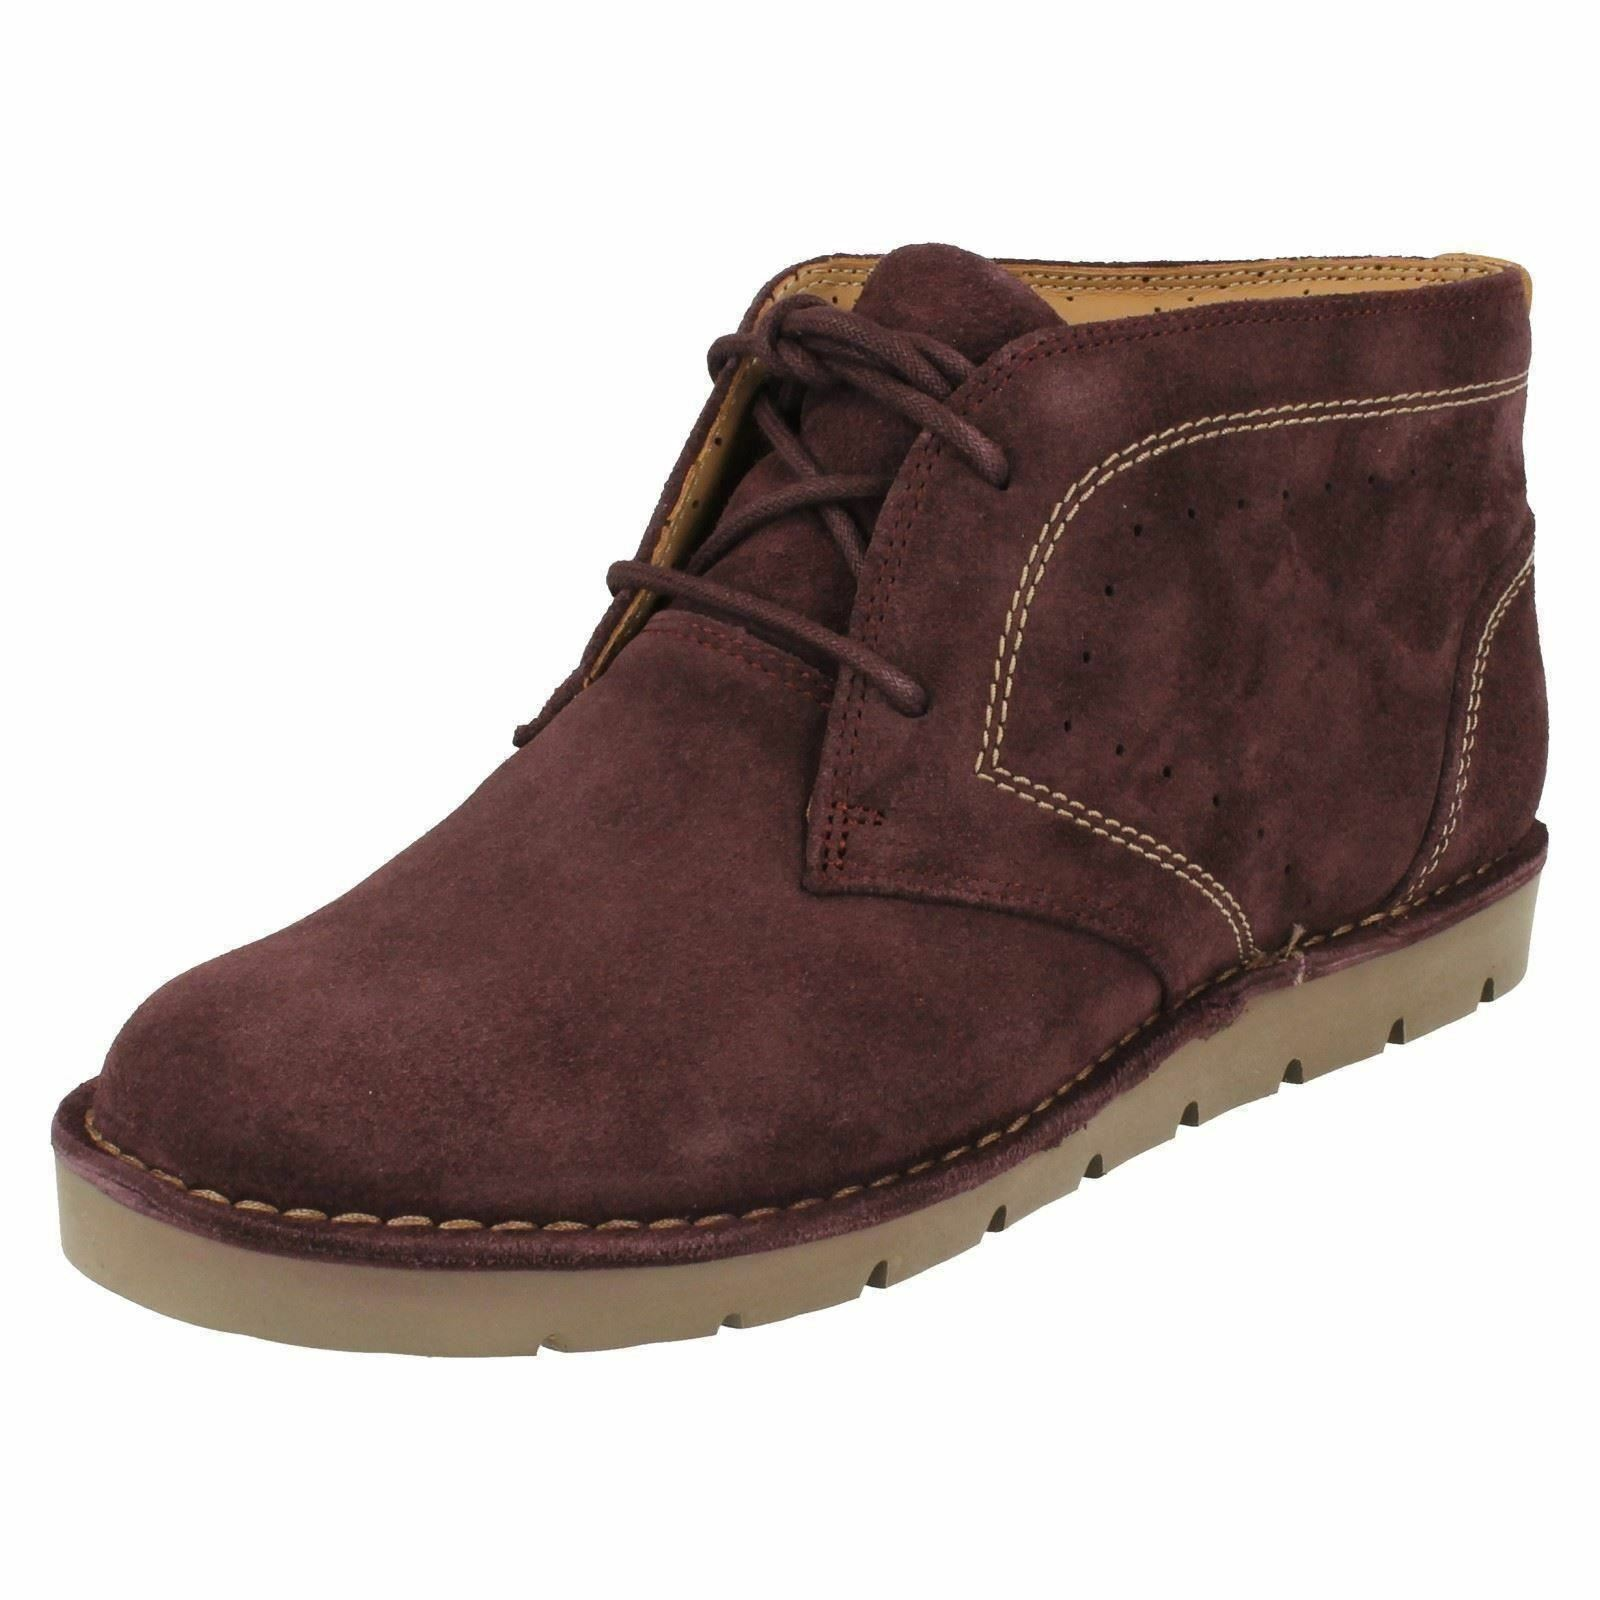 Ladies Clarks Unstructured Un Astin Astin Astin Suede Leather Casual Lace Up Ankle Boots a0ad28